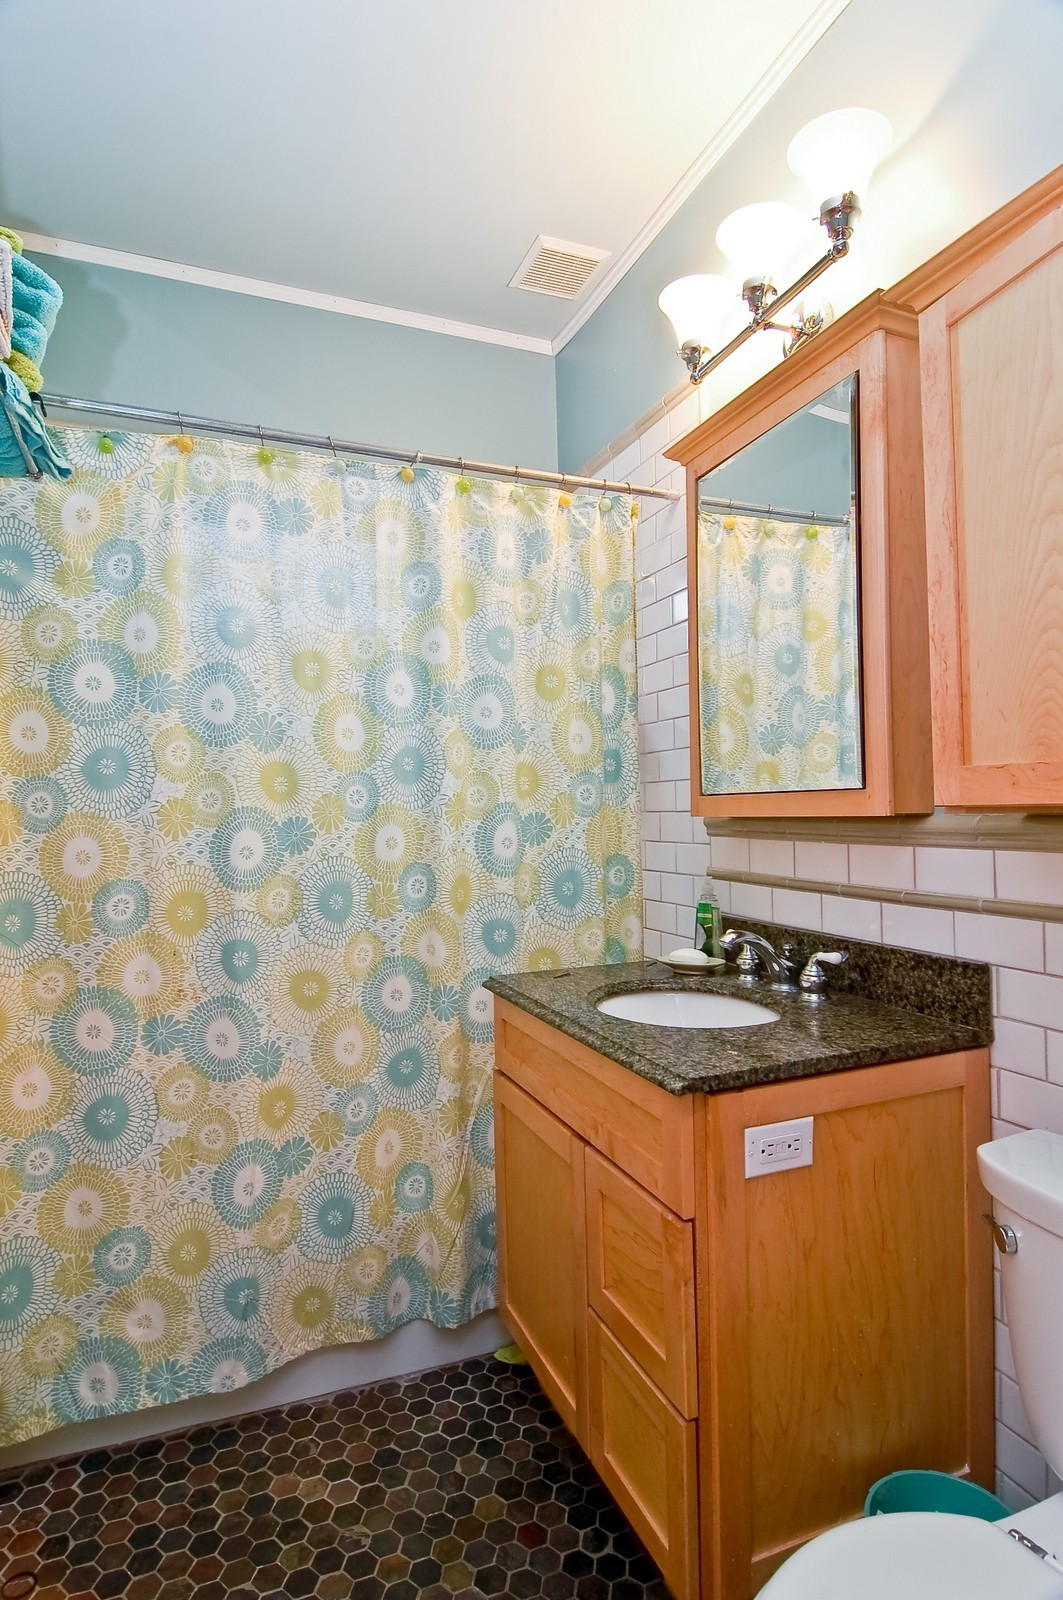 Real Estate Photography - 5012 Upton Avenue South, Minneapolis, MN, 55410 - Bathroom